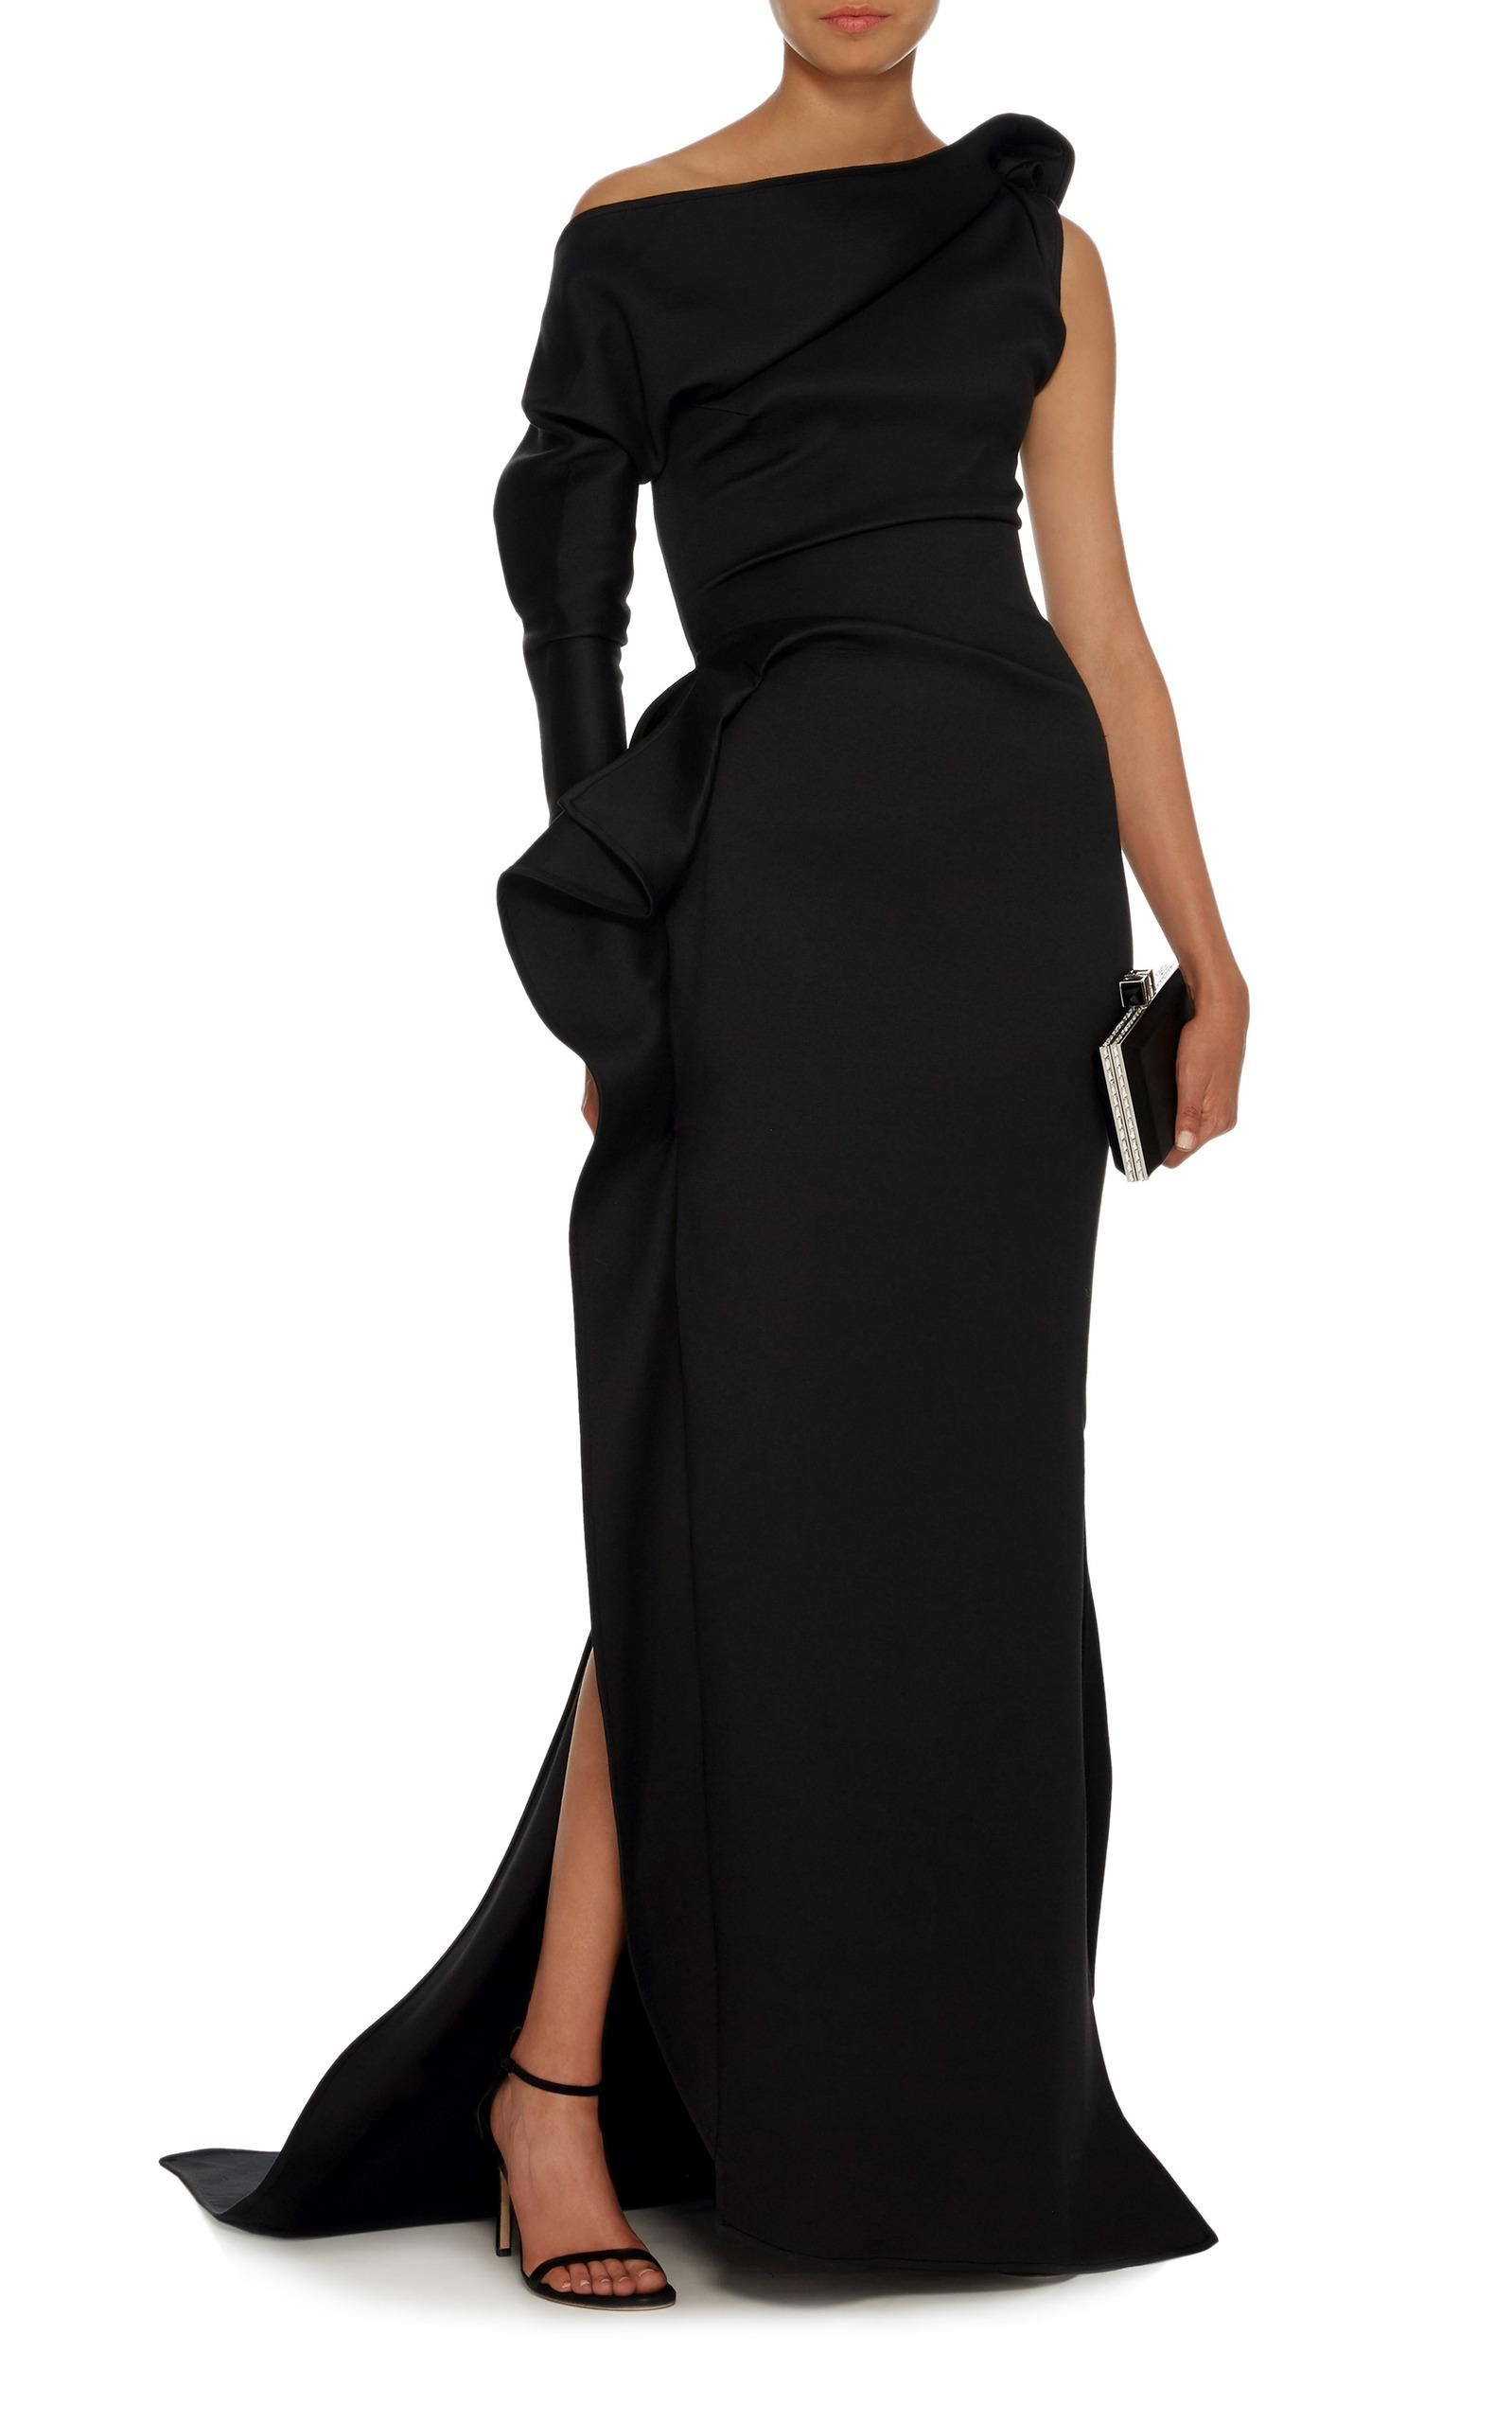 Maticevski Mysterious One-shoulder Cotton-blend Gown in Black